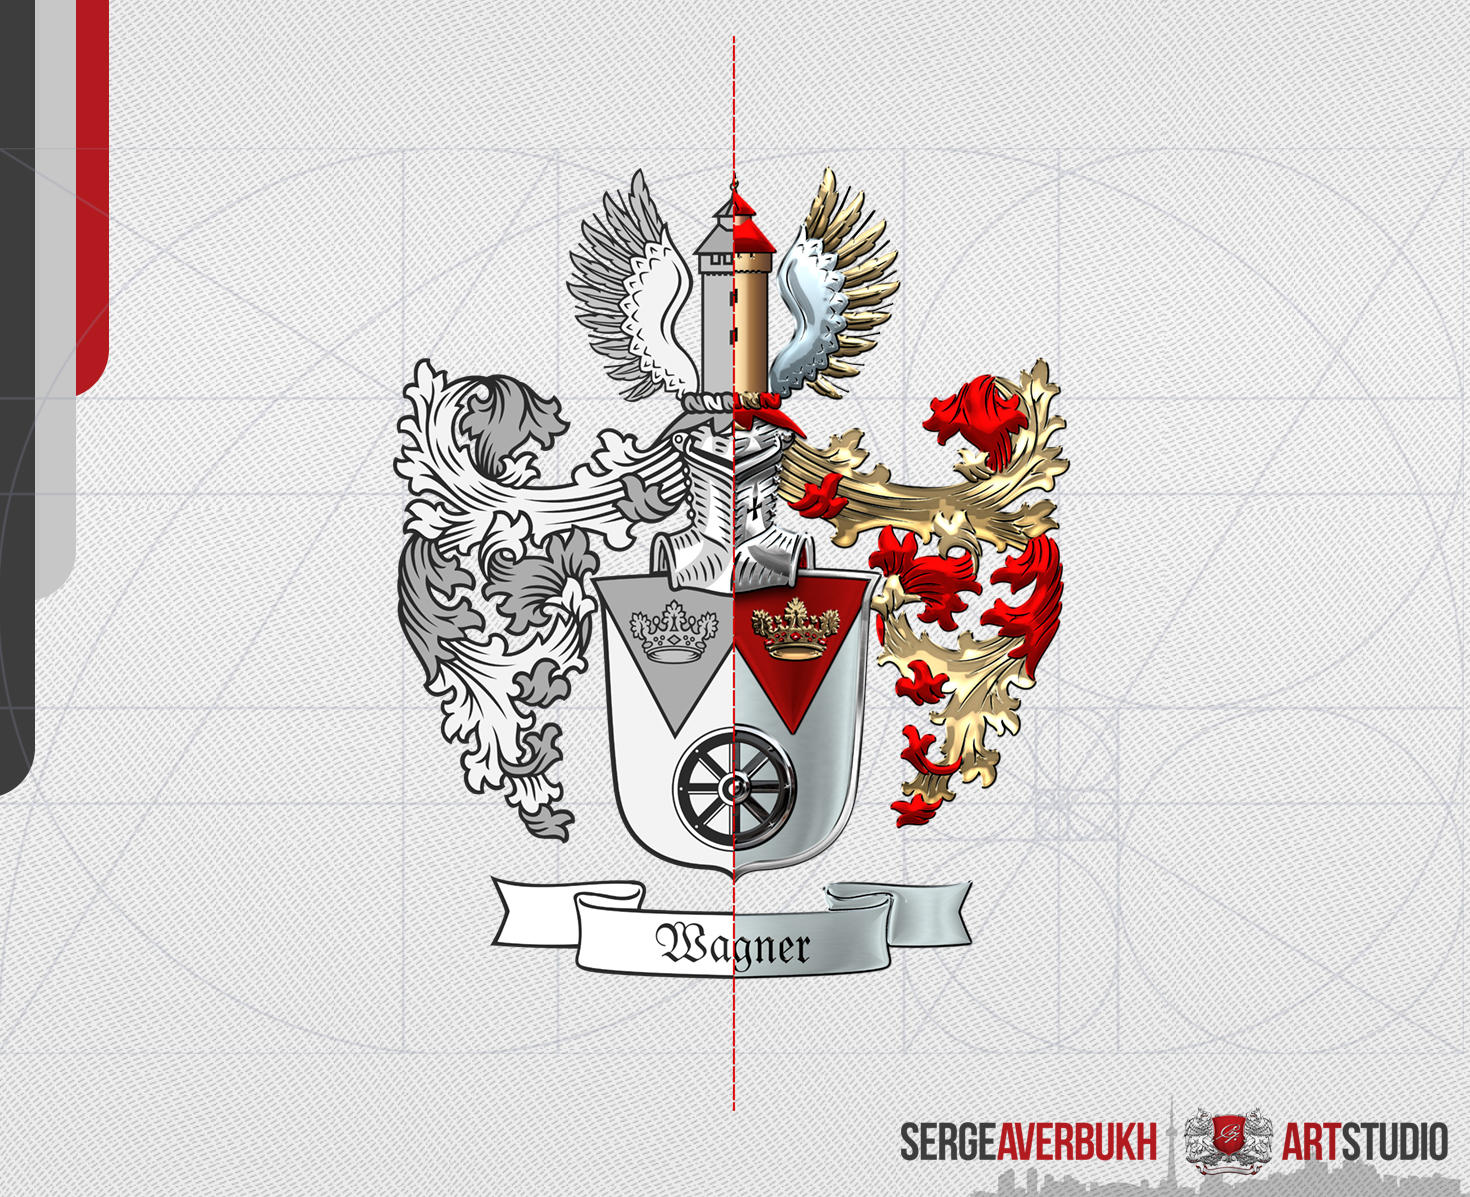 2D Heraldry & Insignia to 2.5D Rendering by Captain7 - 107820